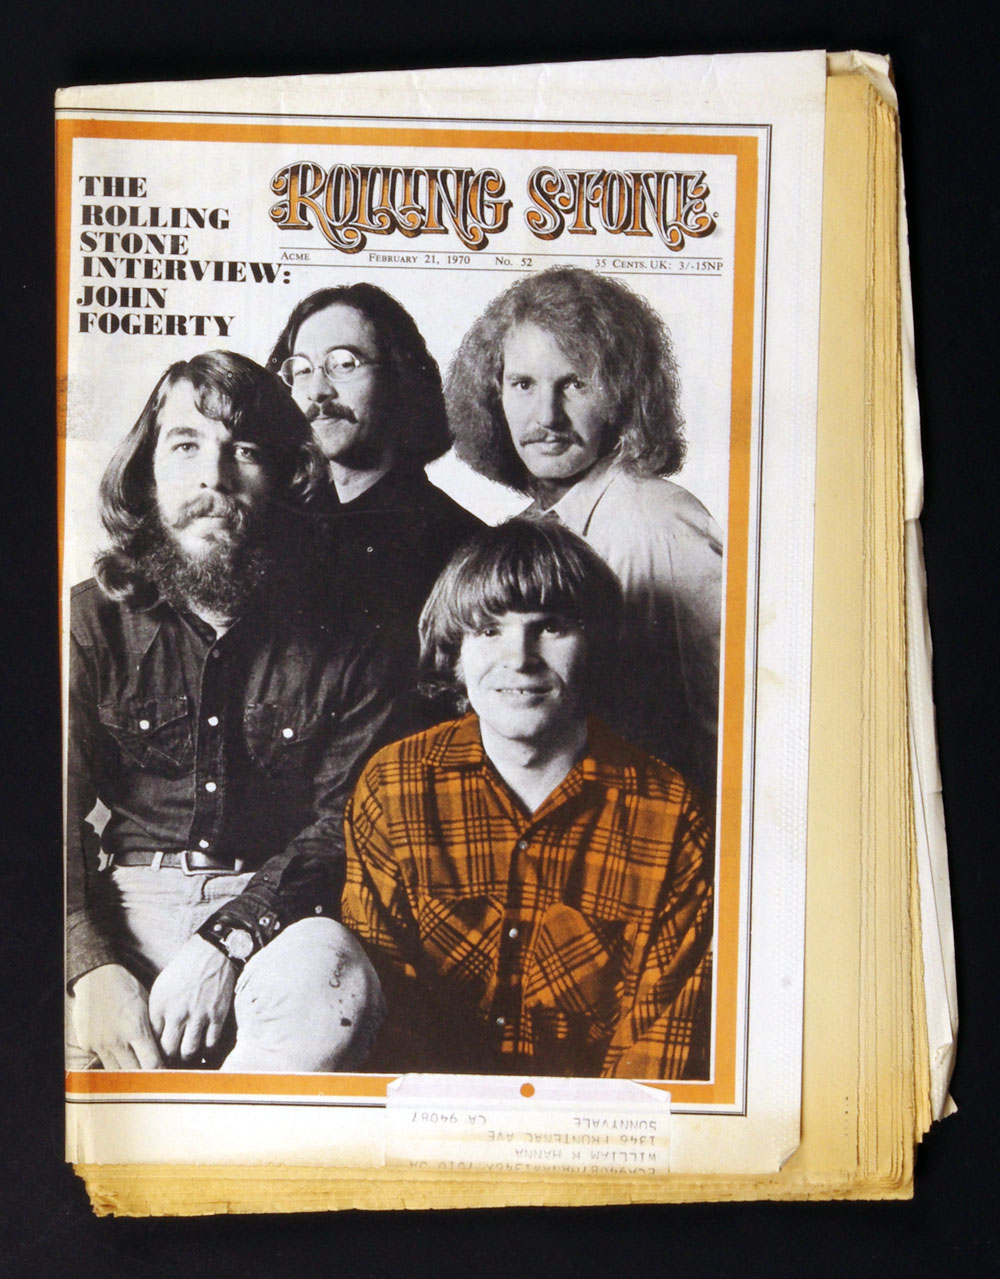 Rolling Stone Magazine 1970 Feb 21 No.52 Creedence Clearwater Revival